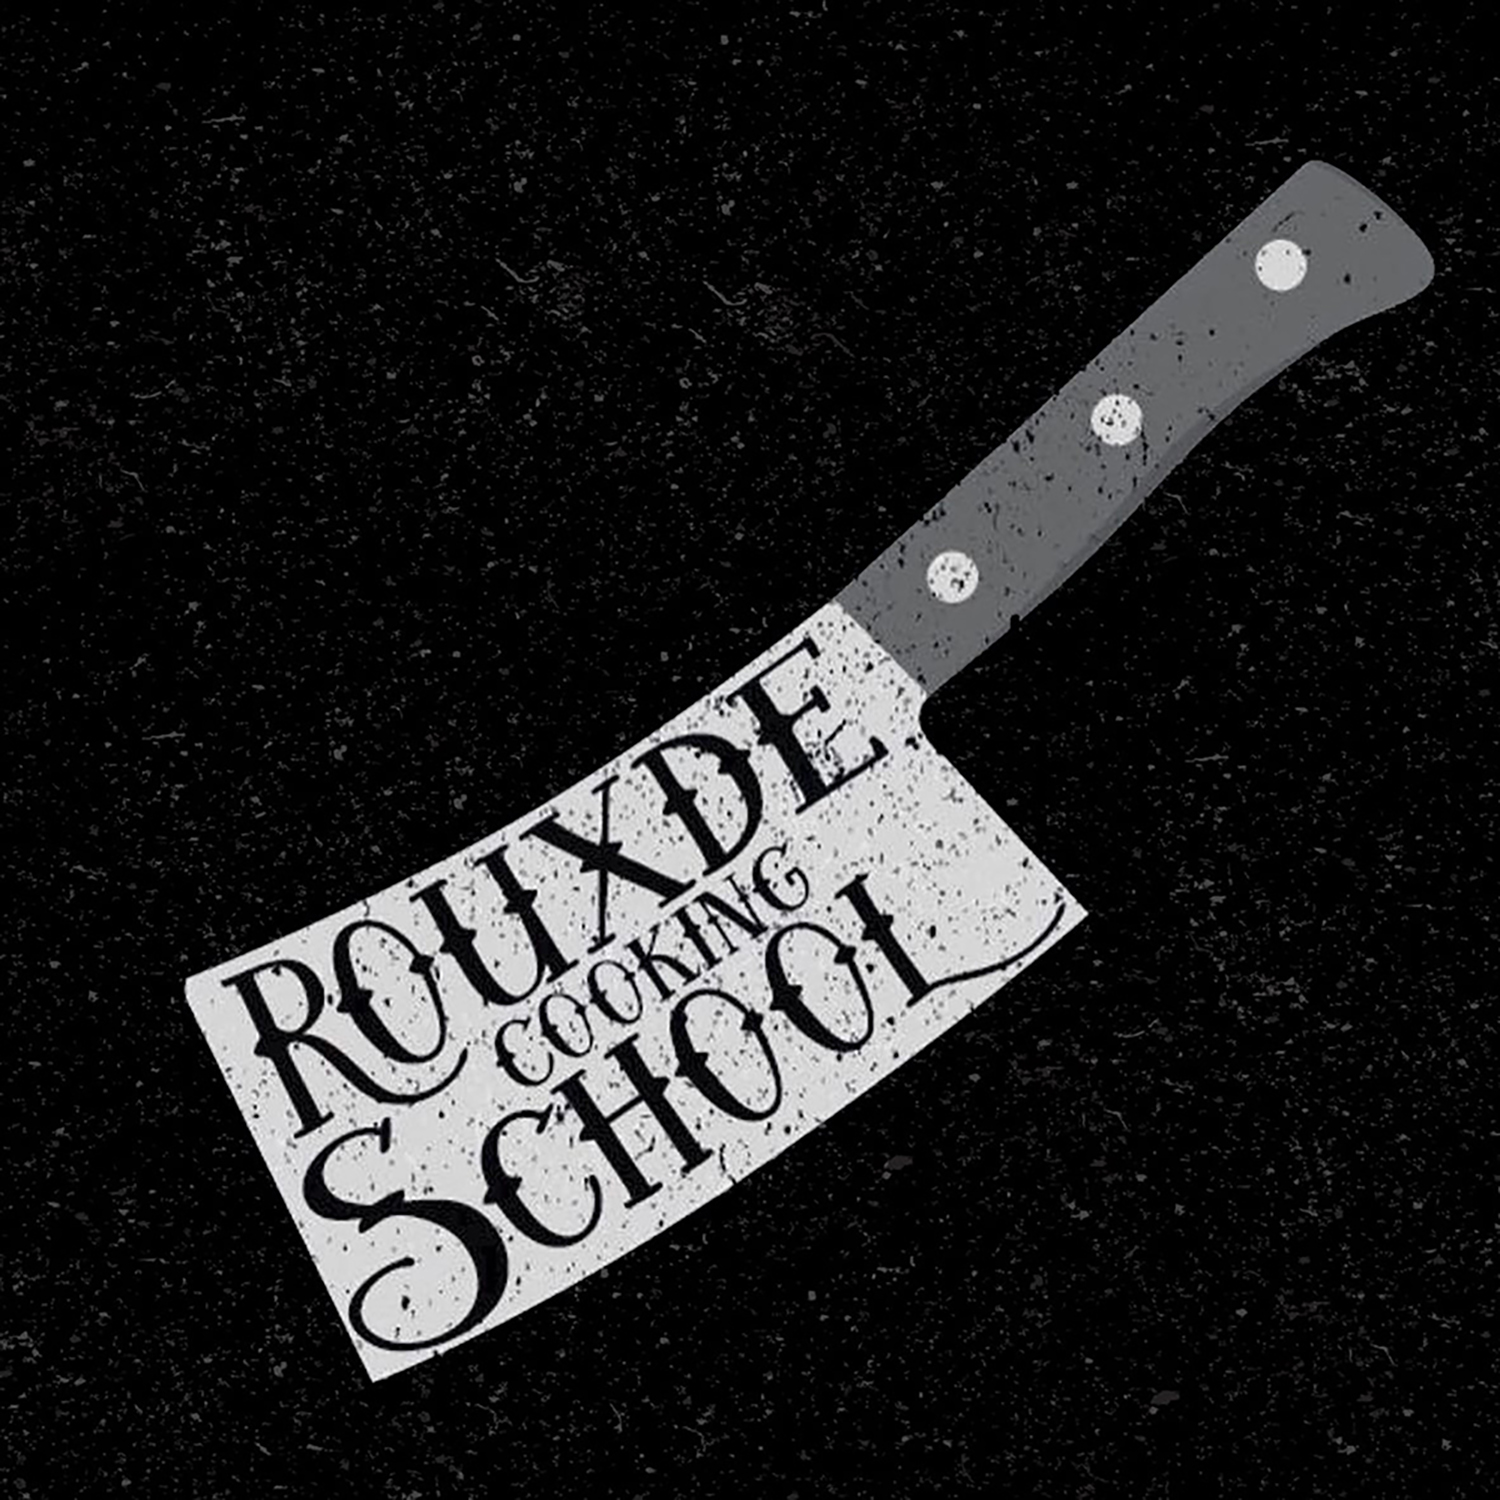 The Rouxde Cooking School Podcast logo